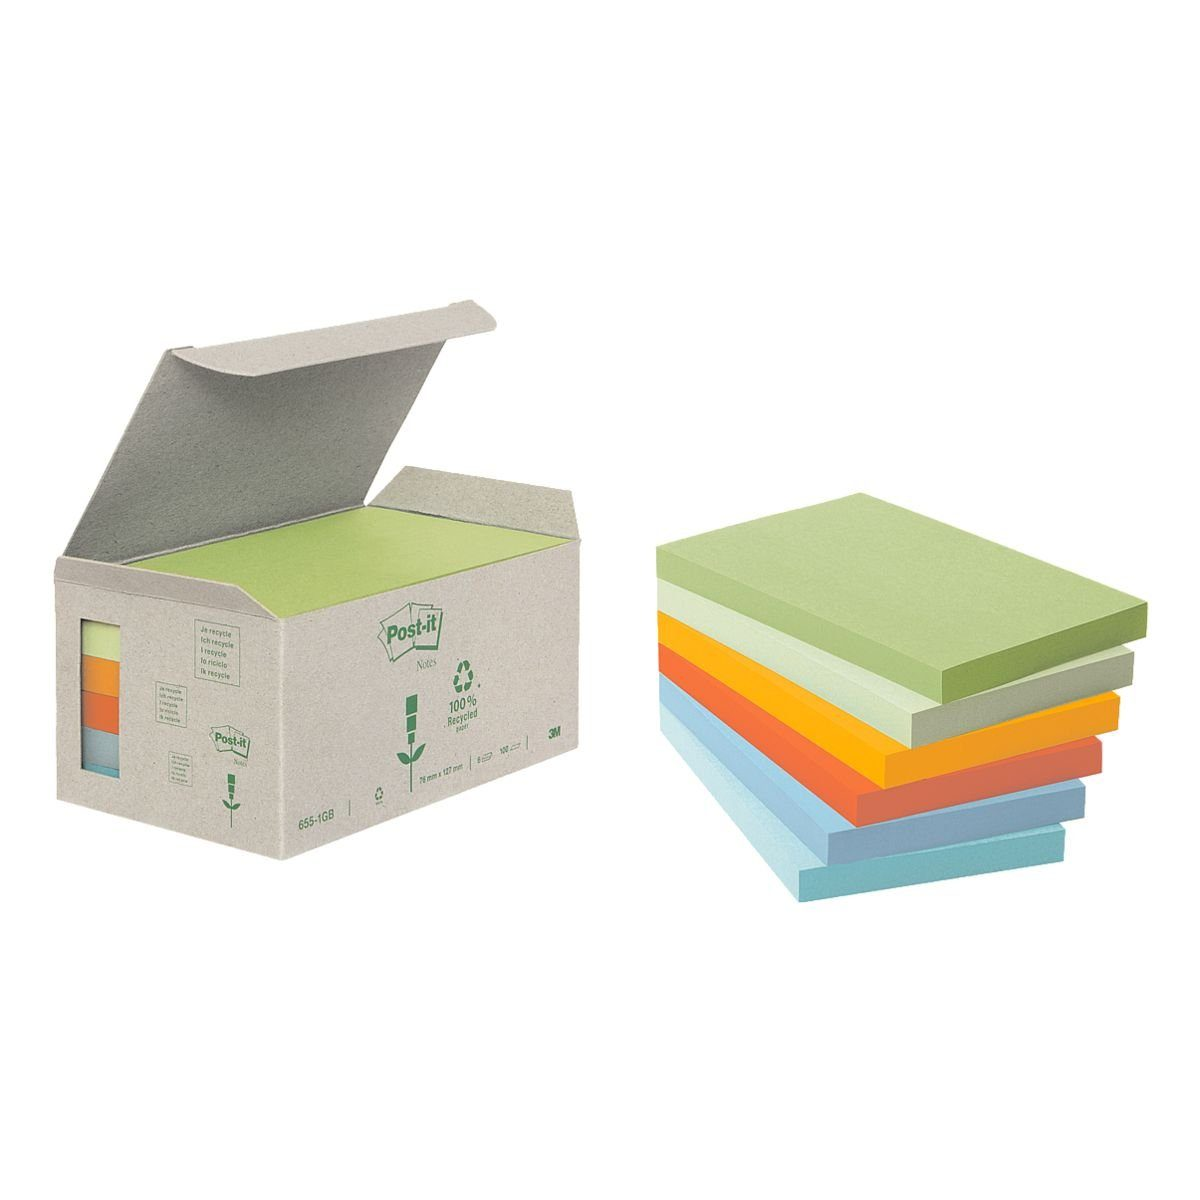 Post-it Notes (Recycle) 6er-Pack Haftnotizblöcke »Recycling Notes 655«